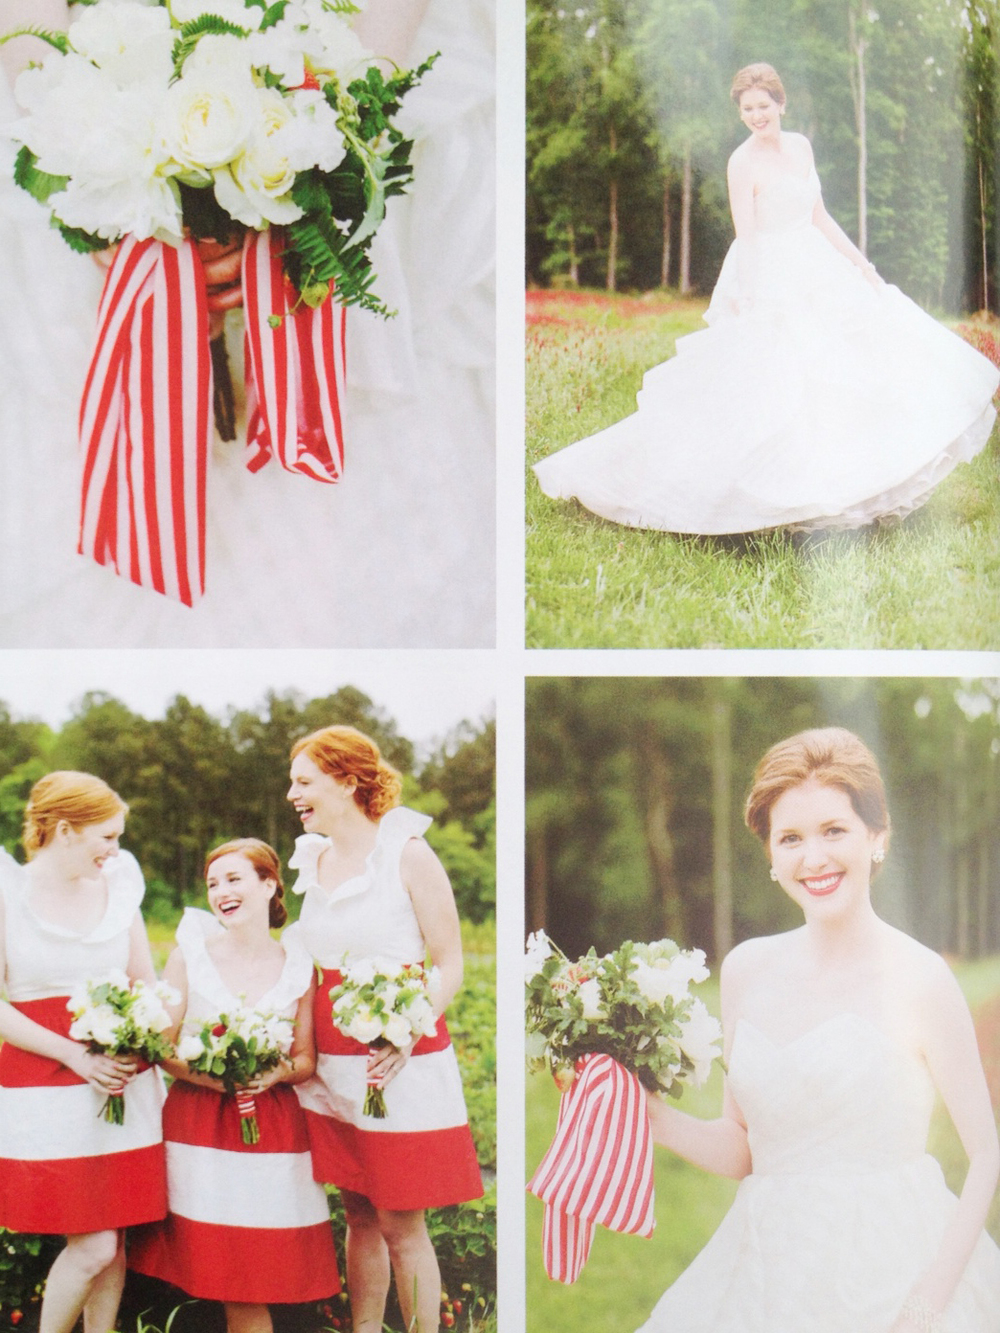 Berry Bliss Editorial Shoot | Southern Weddings V6